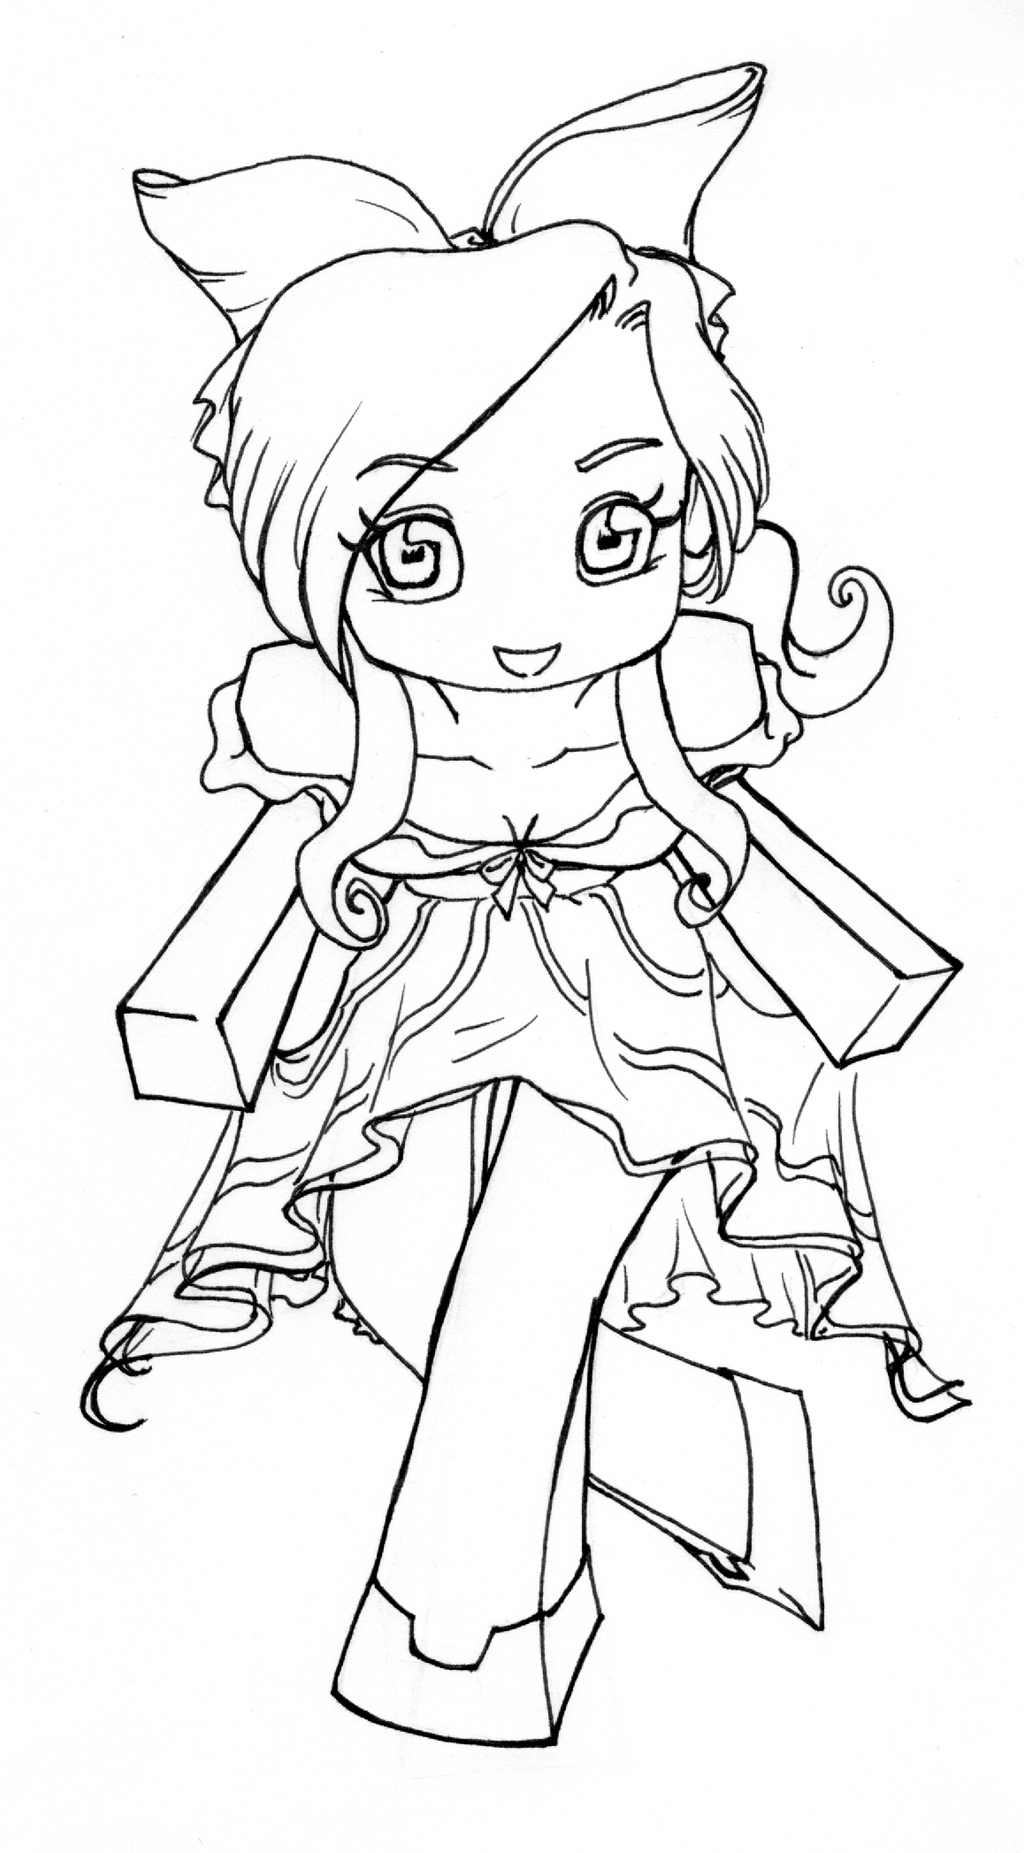 Minecraft Popularmmos Coloring Pages Coloring Pages